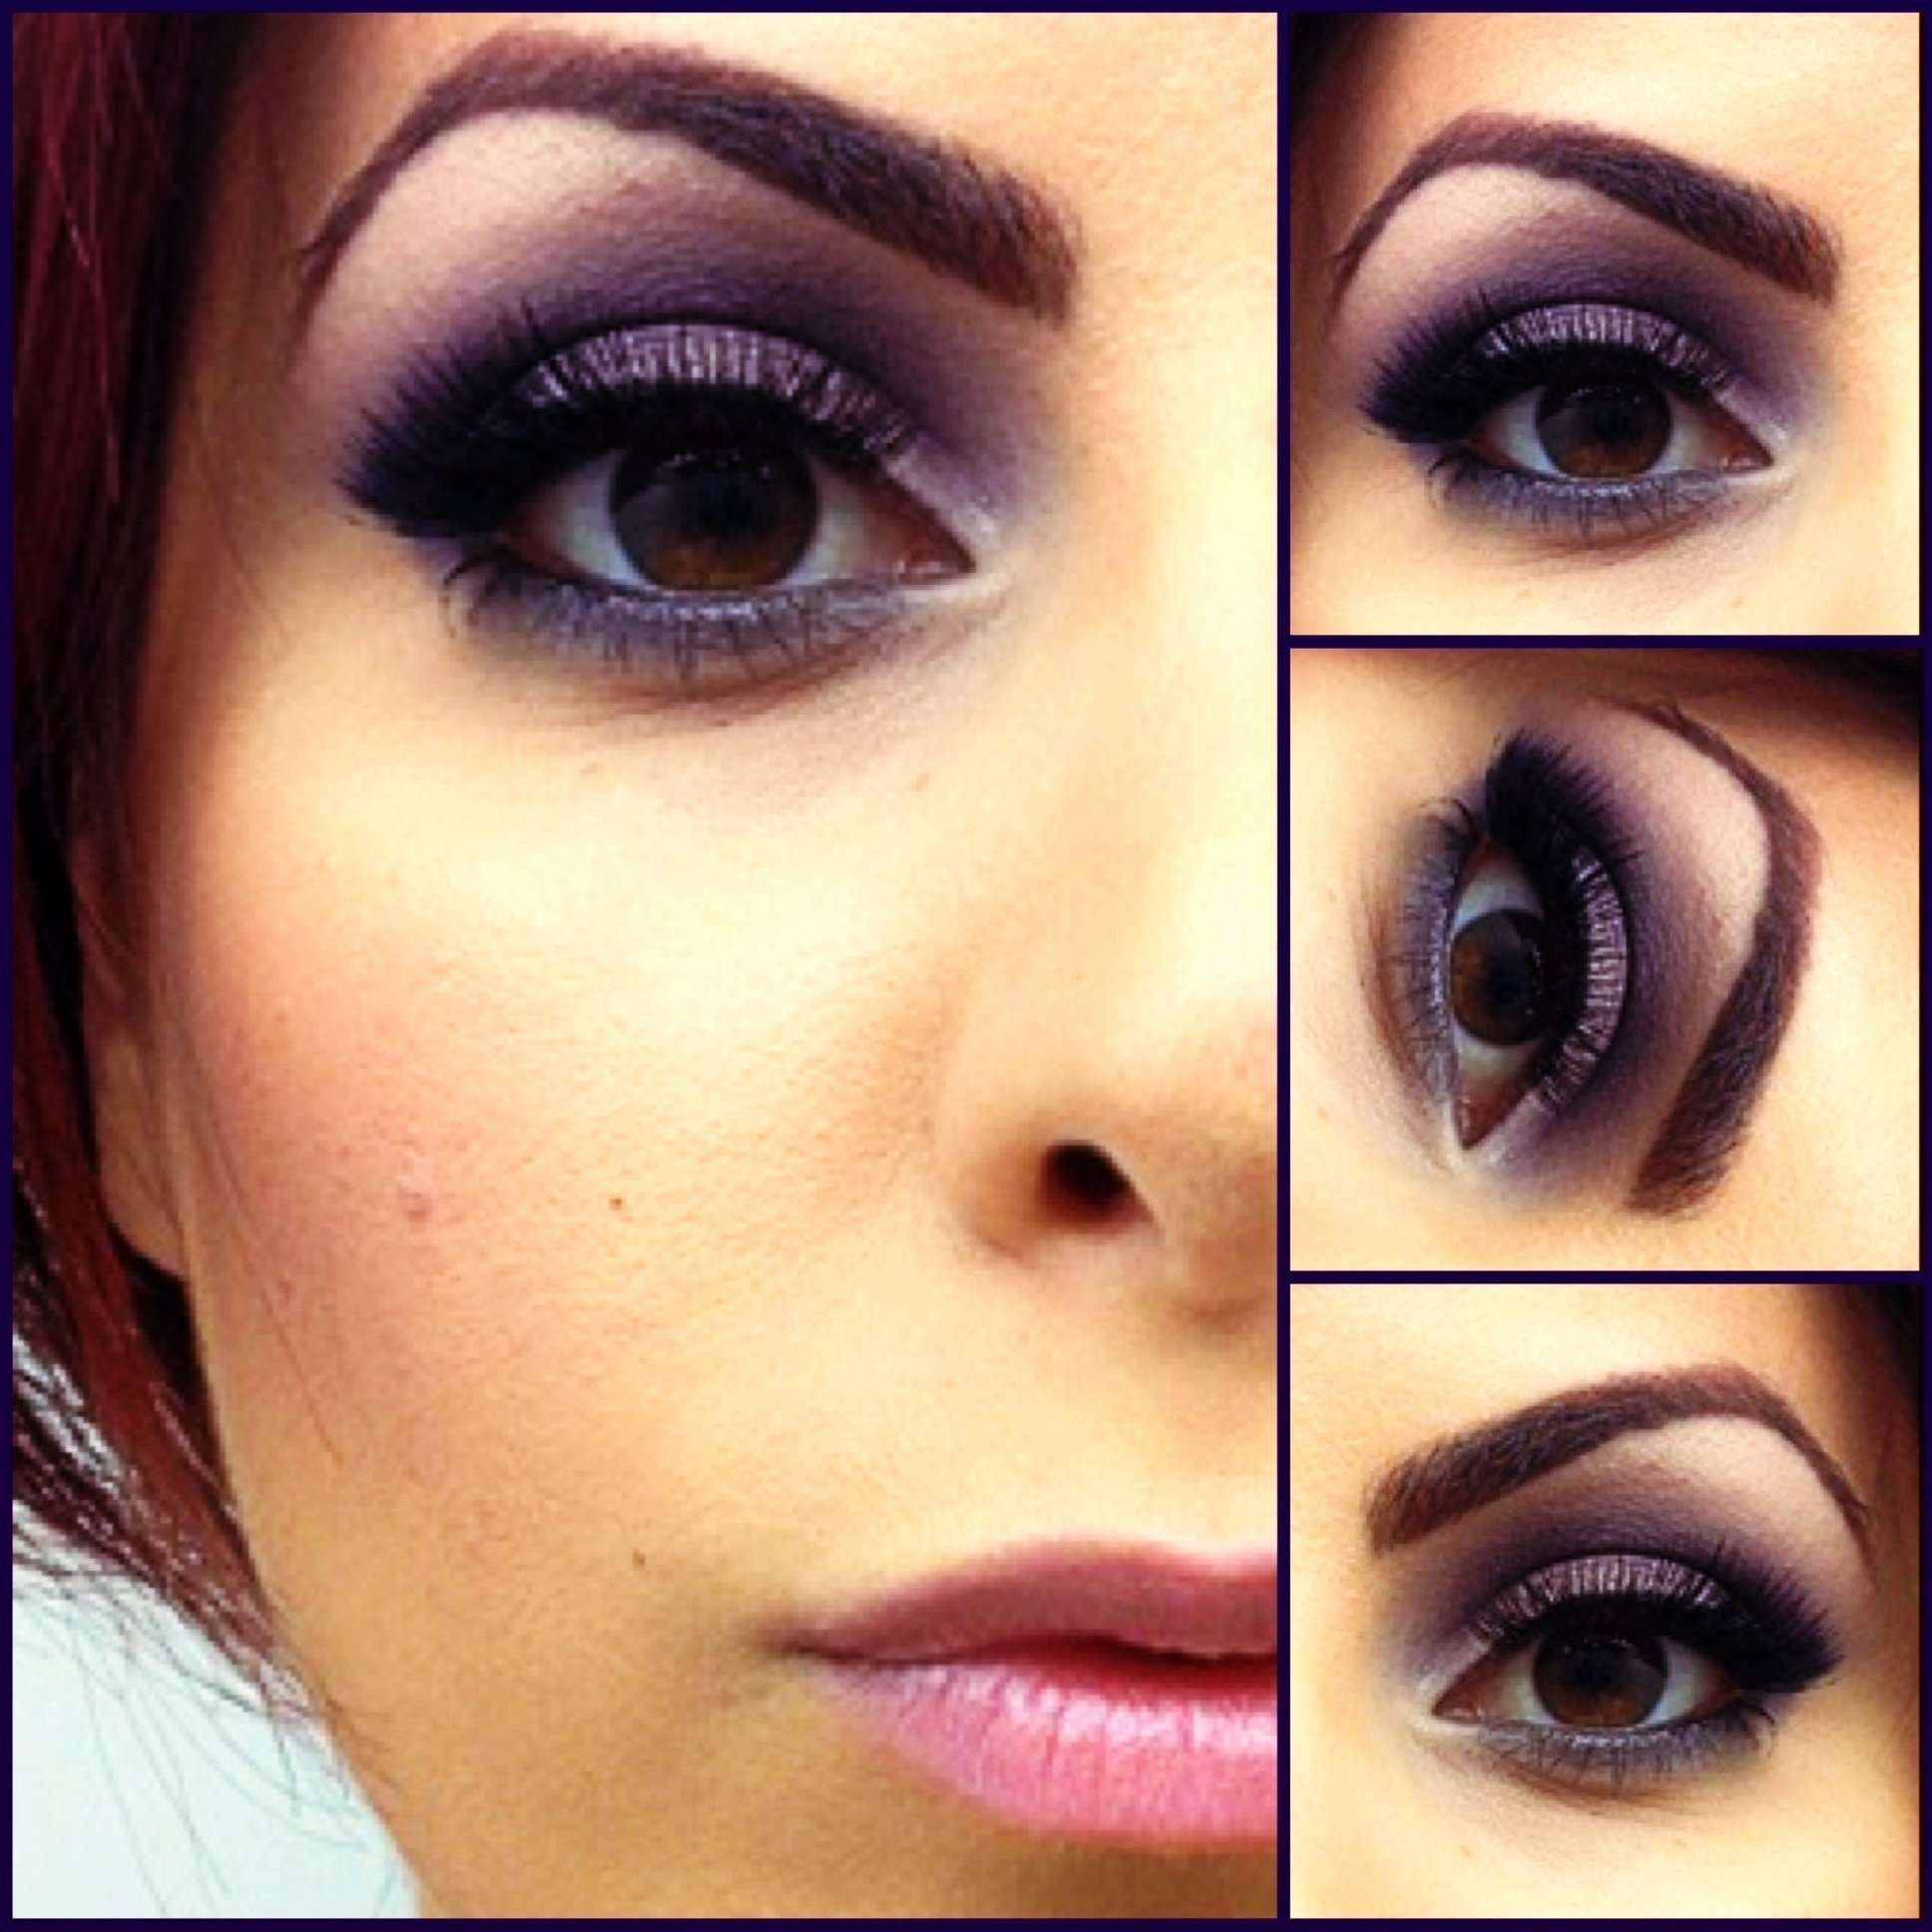 10 Lovable Makeup Ideas For Dark Brown Eyes night makeup for brown eyes 2017 ideas pictures tips about make up 2021